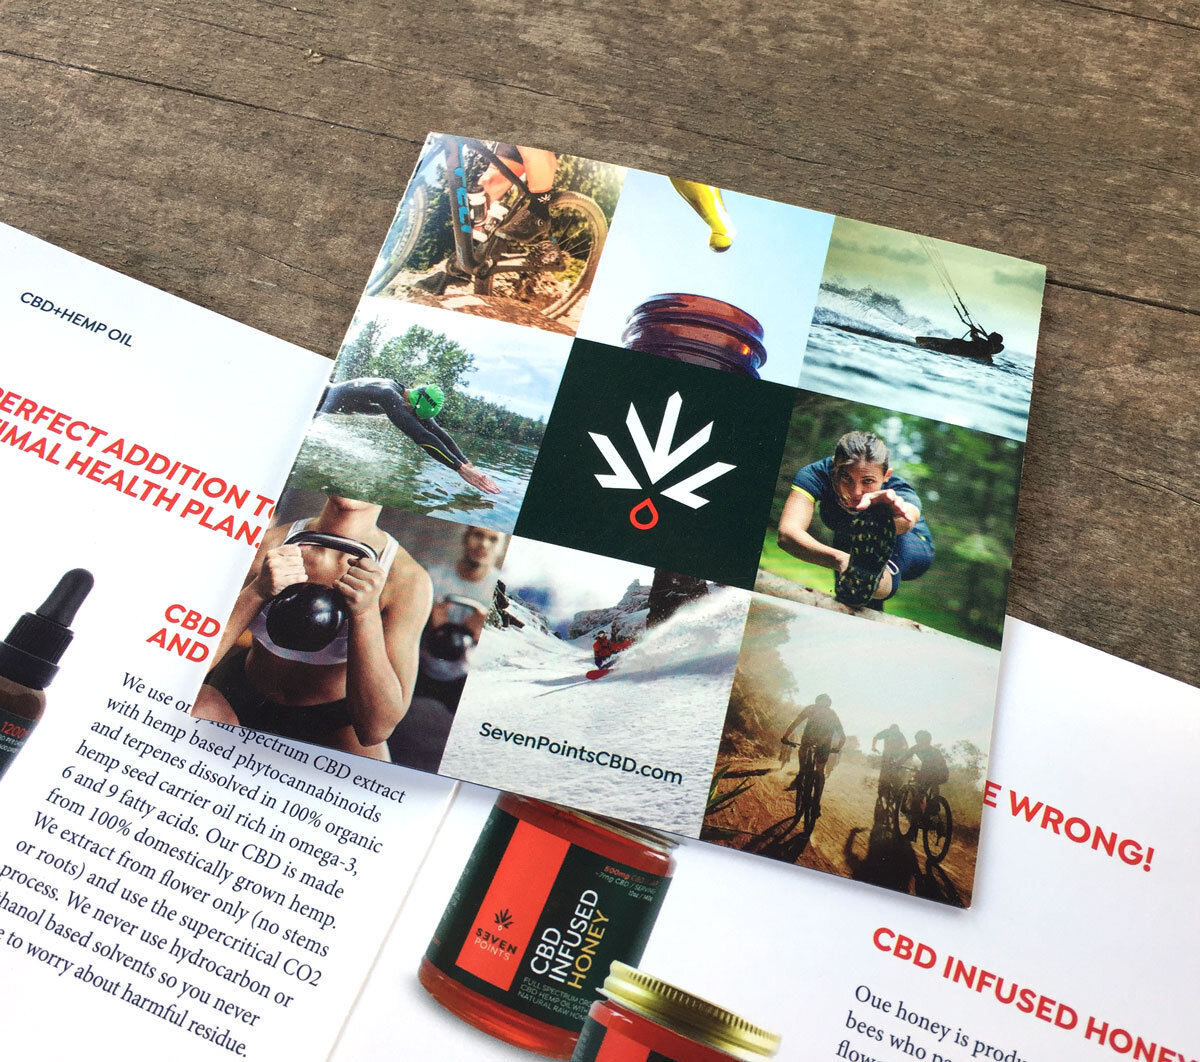 BROCHURE FOR SEVEN POINTS CBD